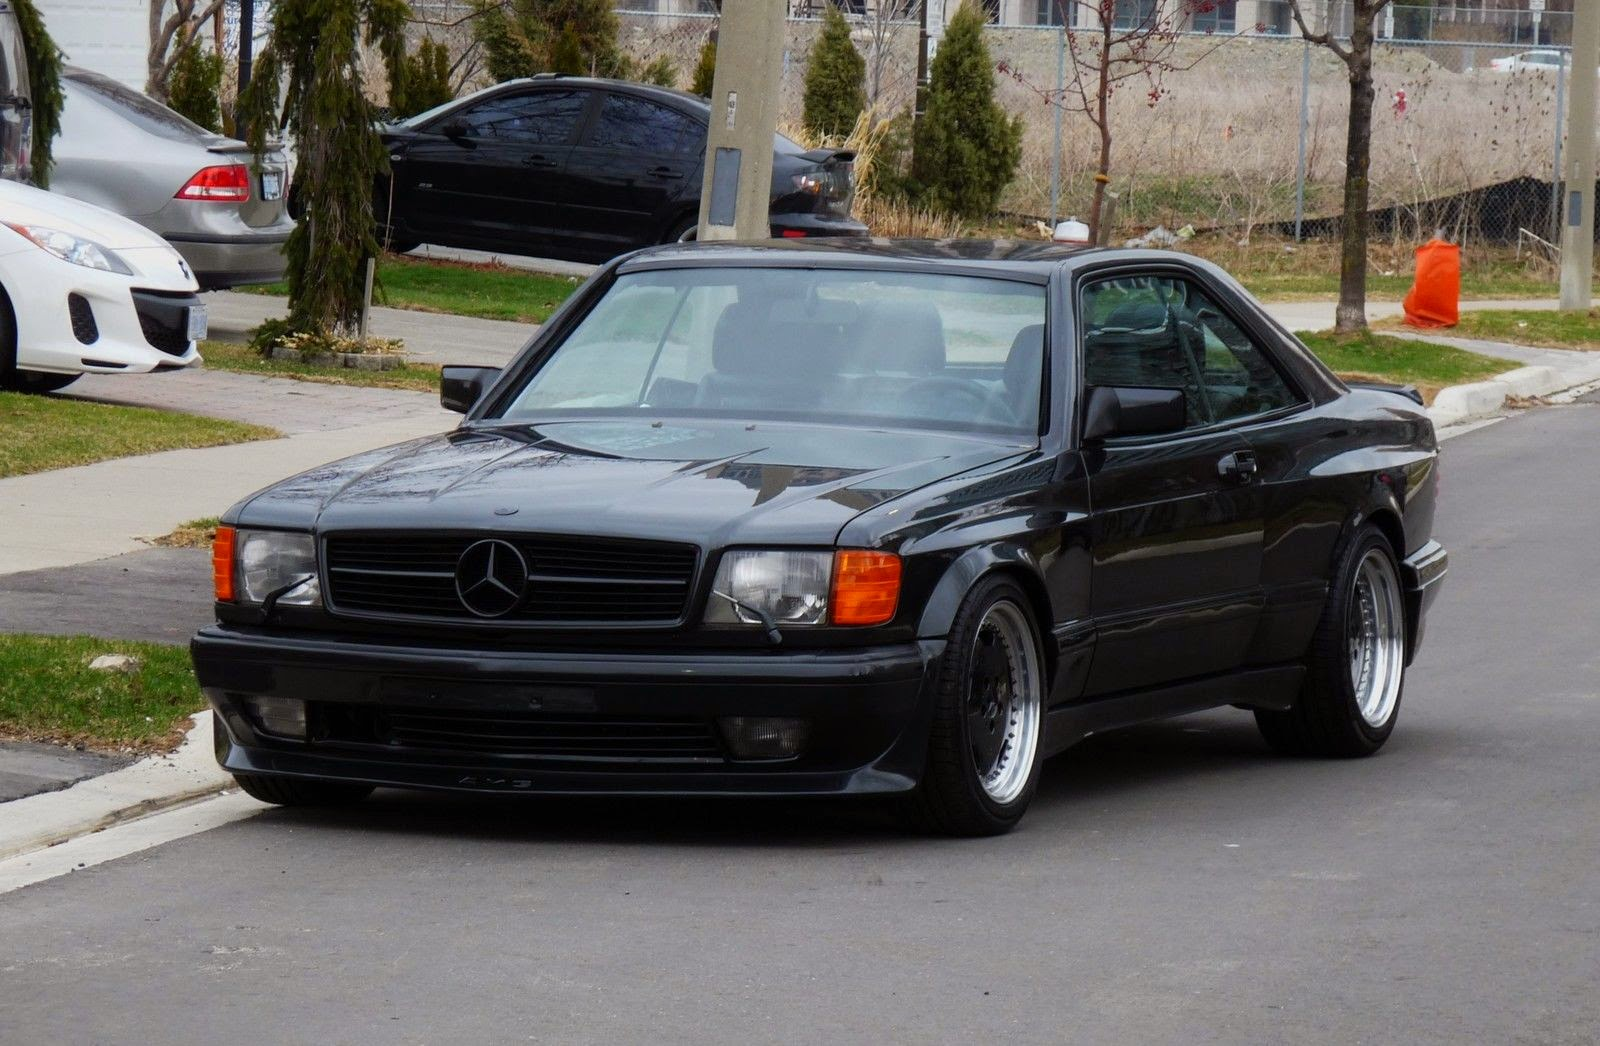 1990 Mercedes Benz 560SEC AMG 60 Widebody For Sale In TorontoCanada